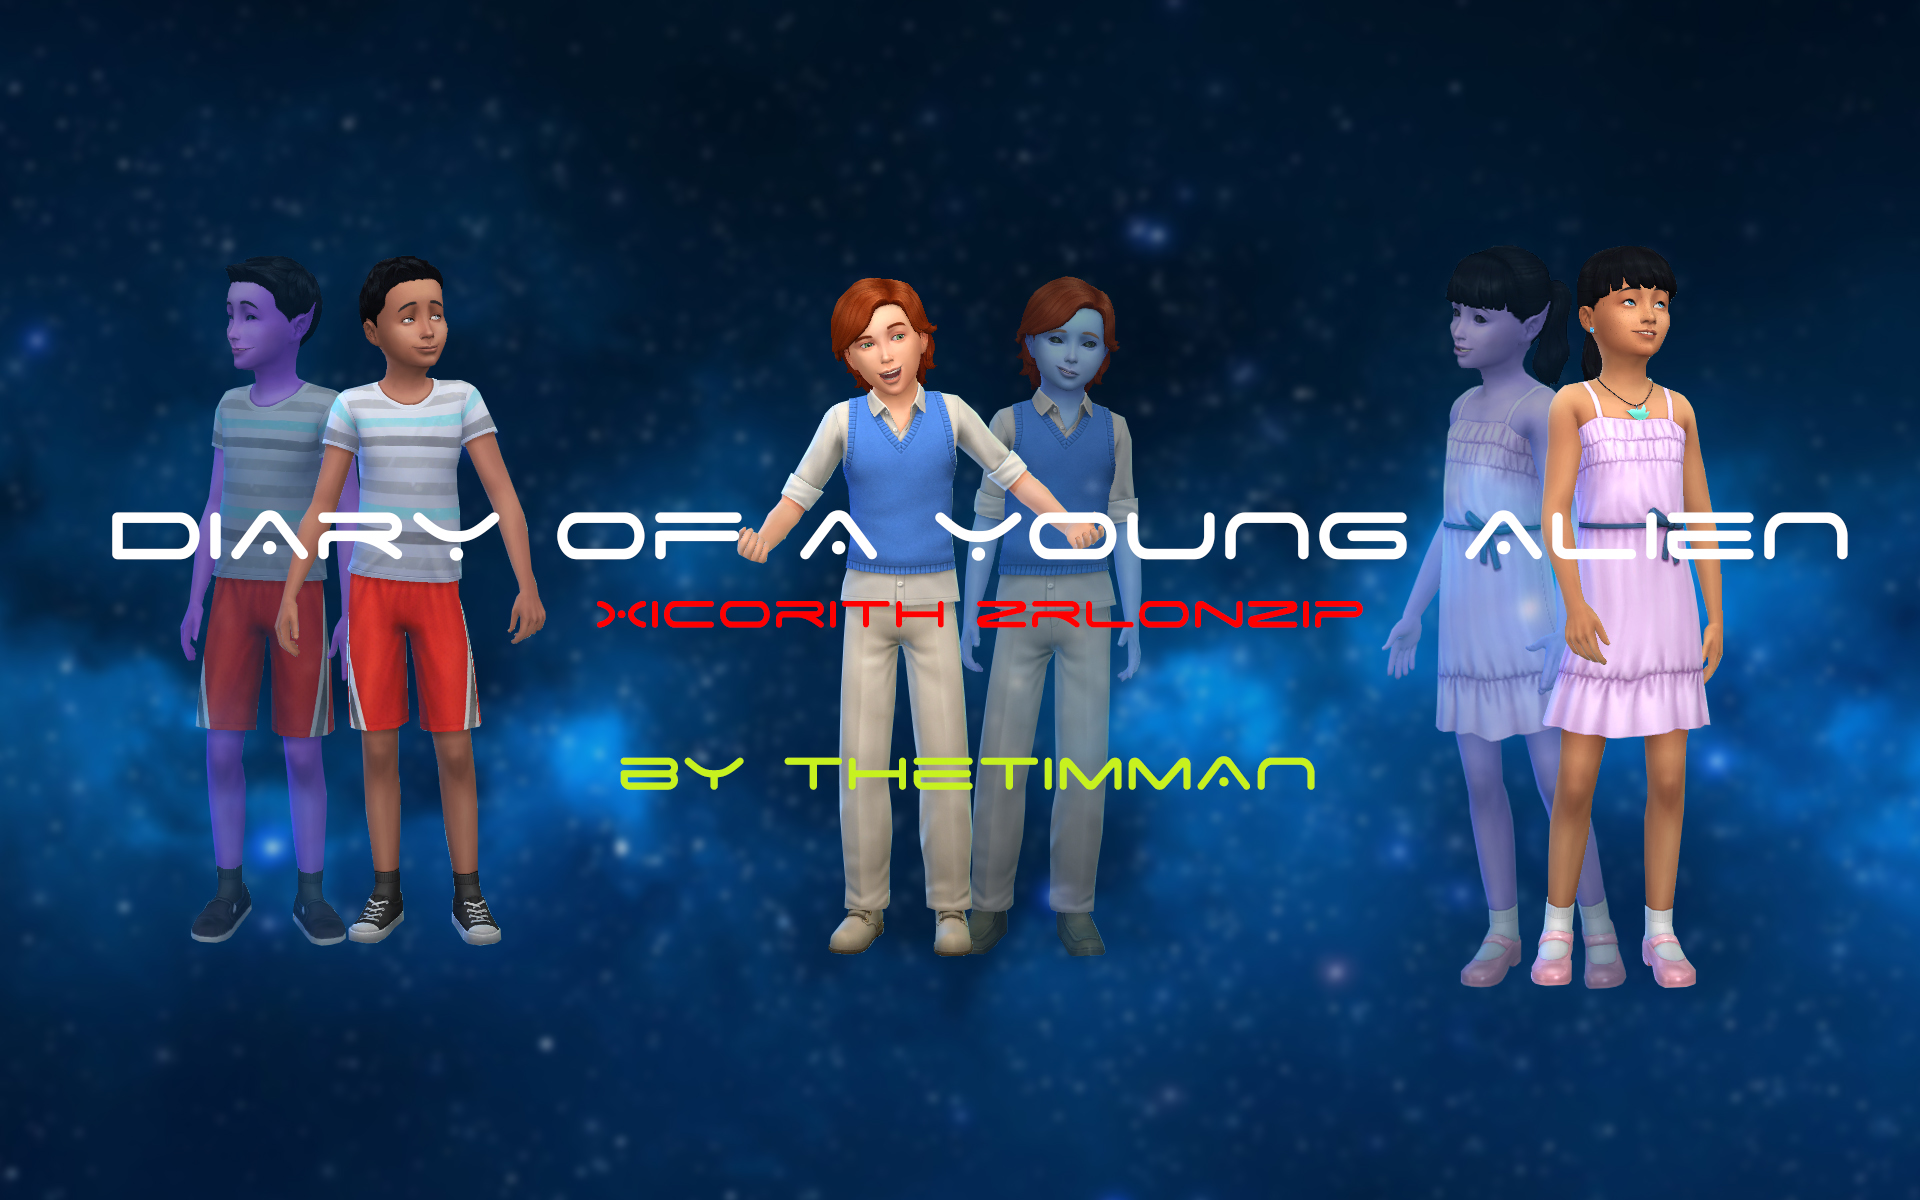 Diary of a Young Alien 2